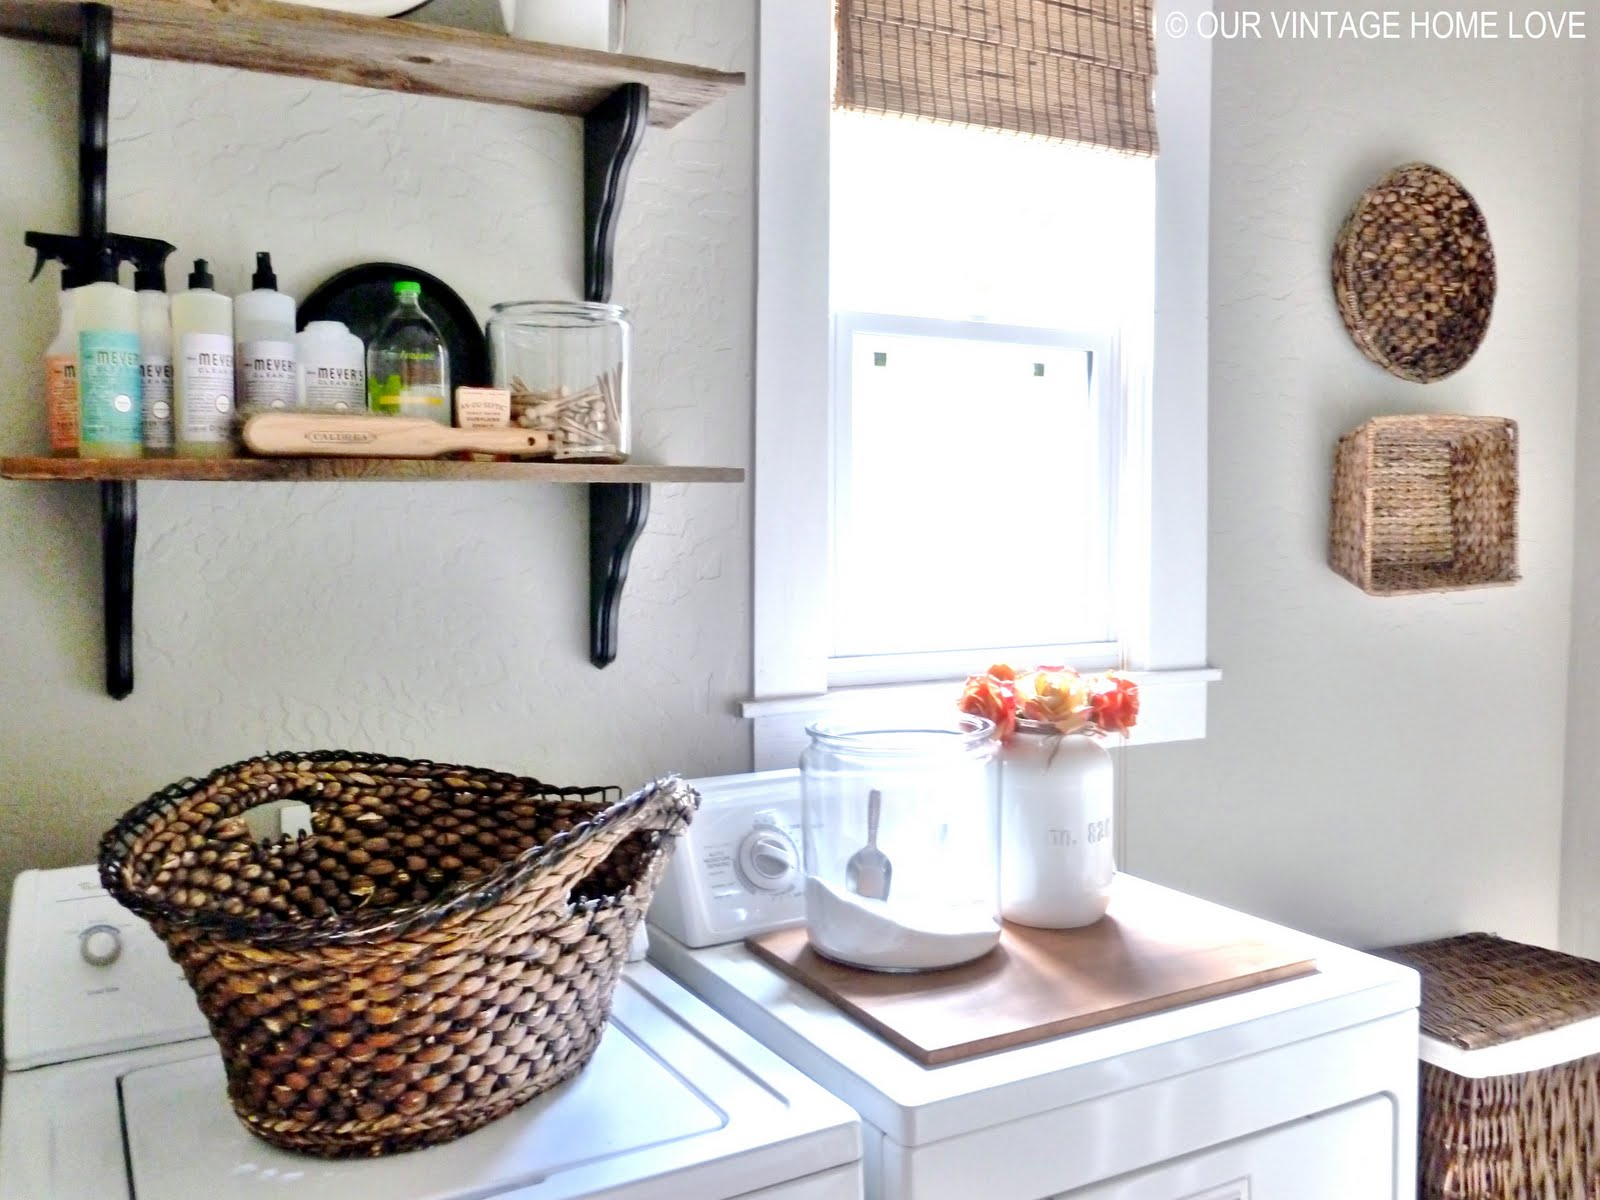 vintage home love: Laundry Room Ideas and a Vintage ... on Laundry Decorating Ideas  id=69559